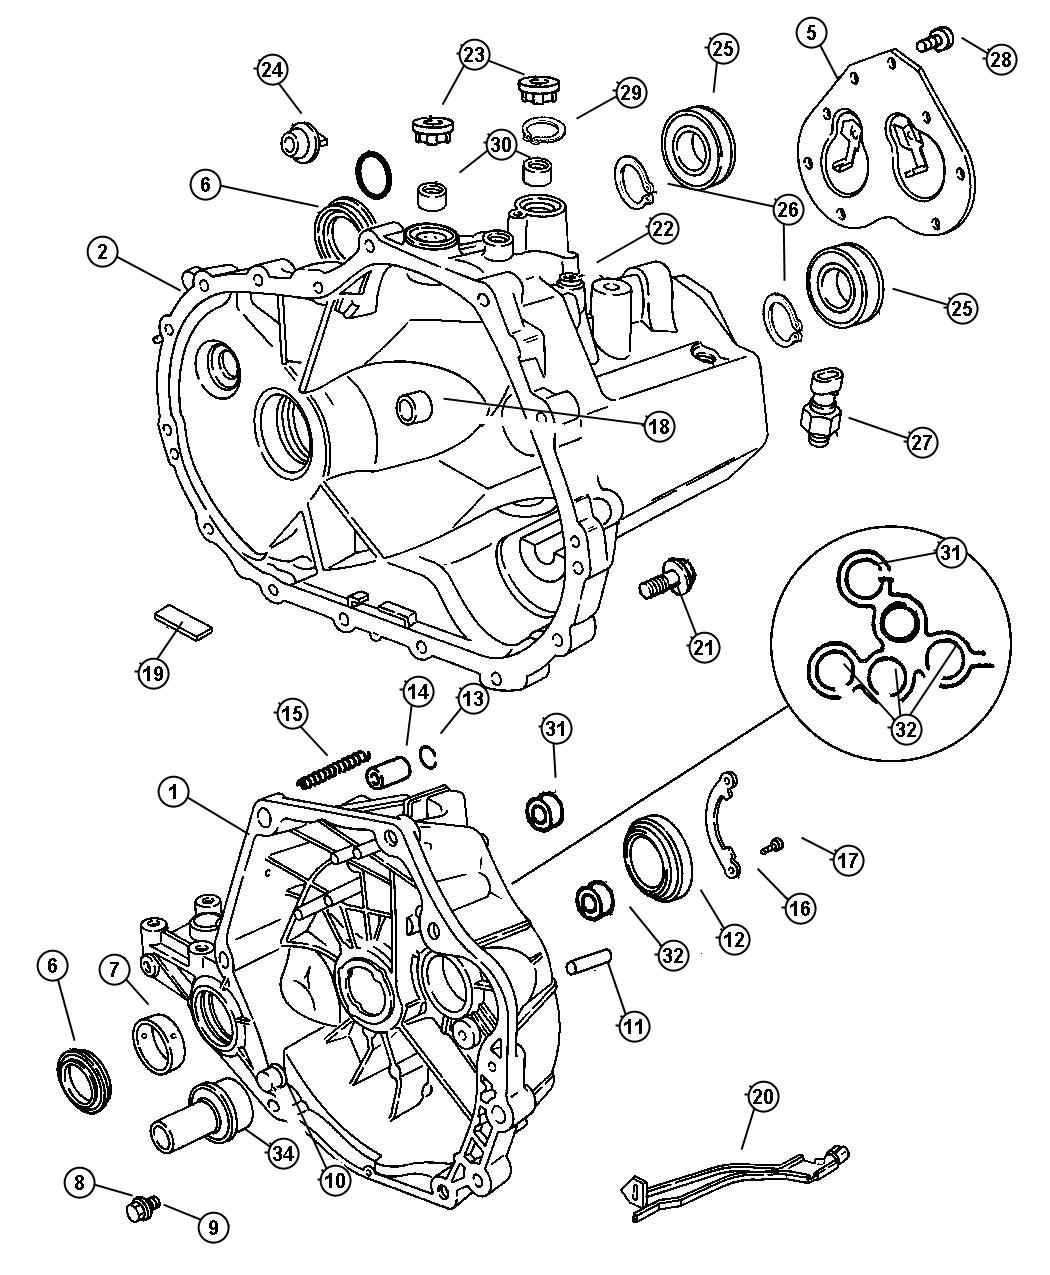 Chrysler Pacifica V6 3 8l Serpentine Belt Diagram